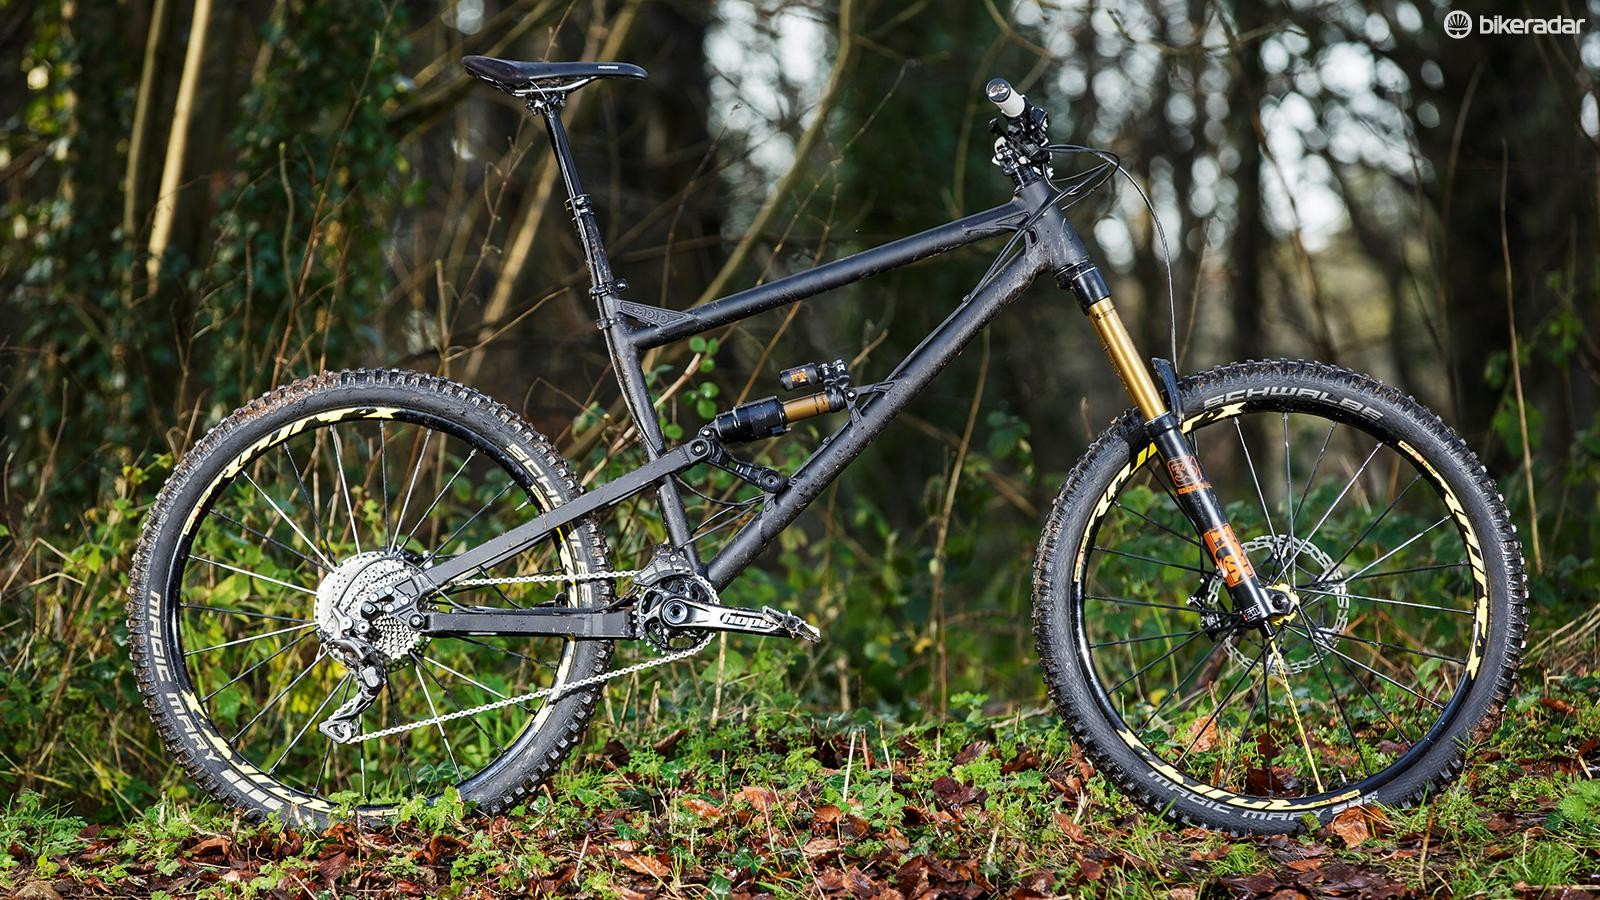 Radical mountain bike geometry is becoming more mainstream, but Mojo/Nicolai's GeoMetron is pushing the envelope